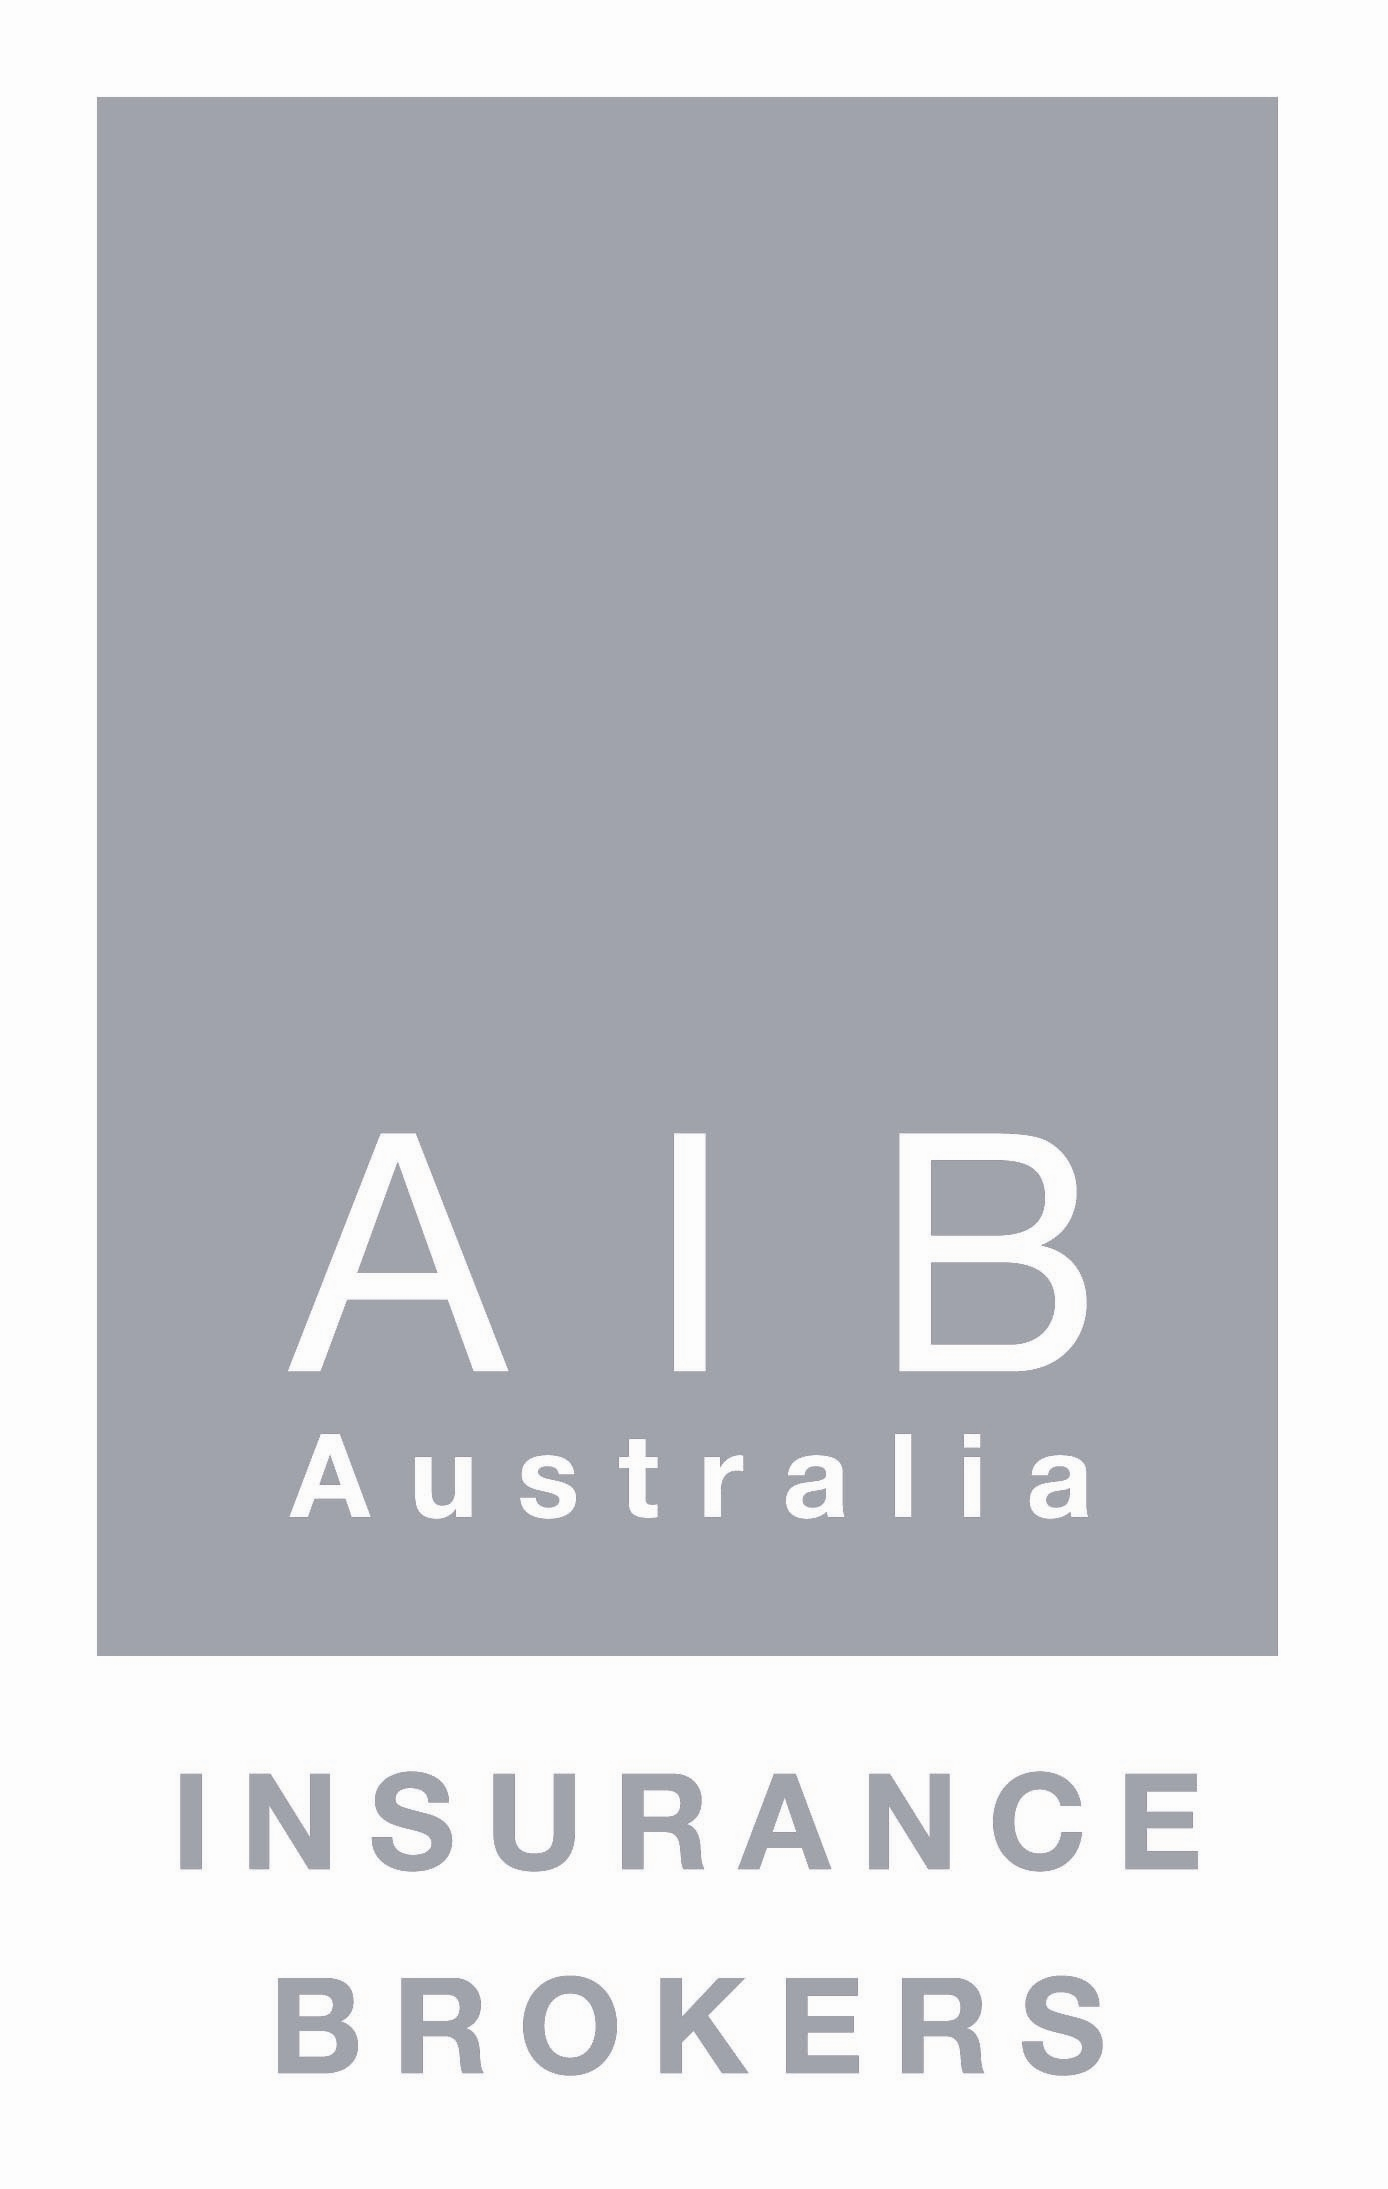 AIB Insurance Brokers  Complete LOGO